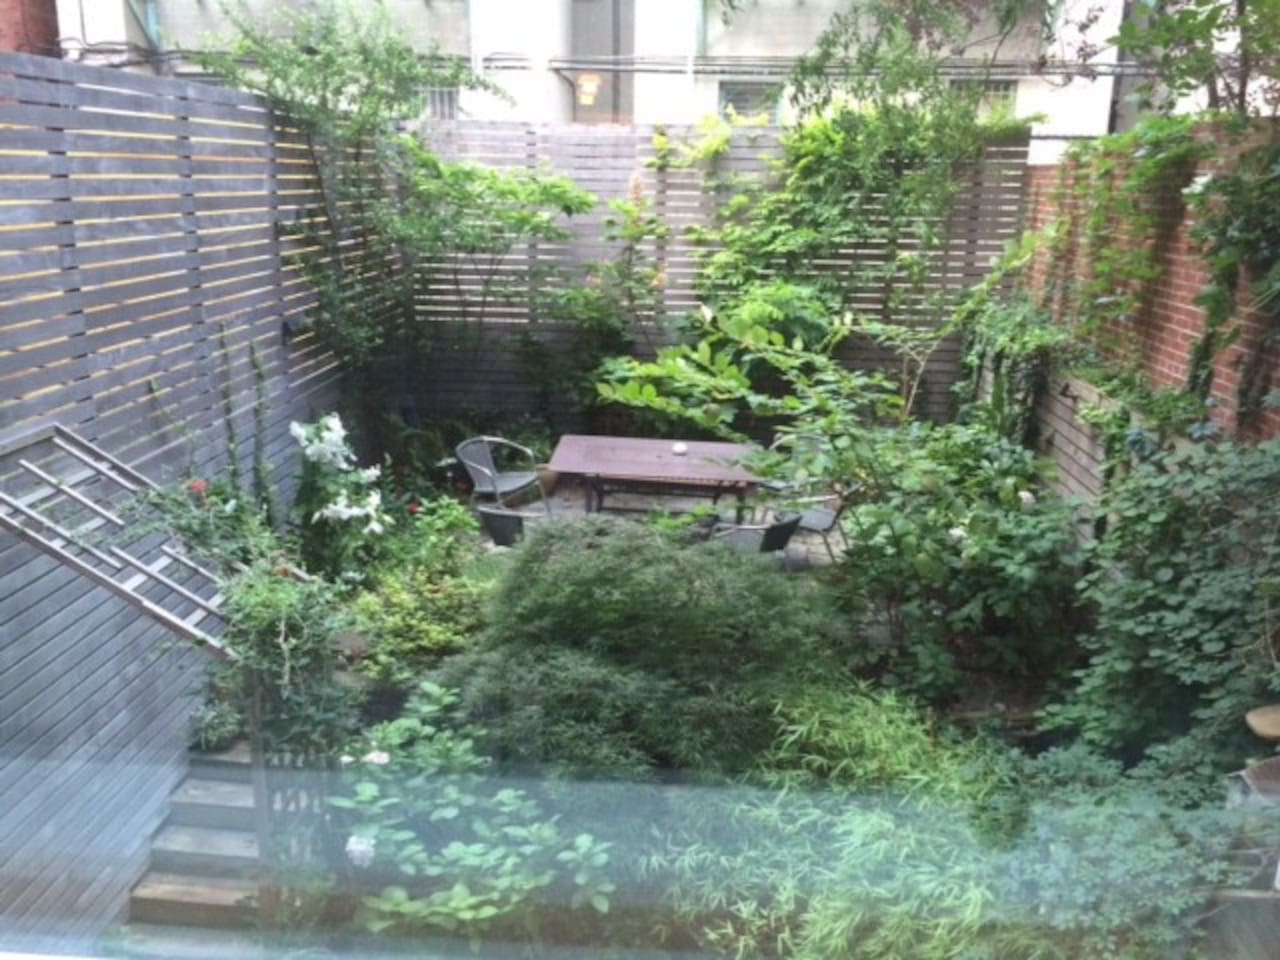 private garden as seen through upstairs window